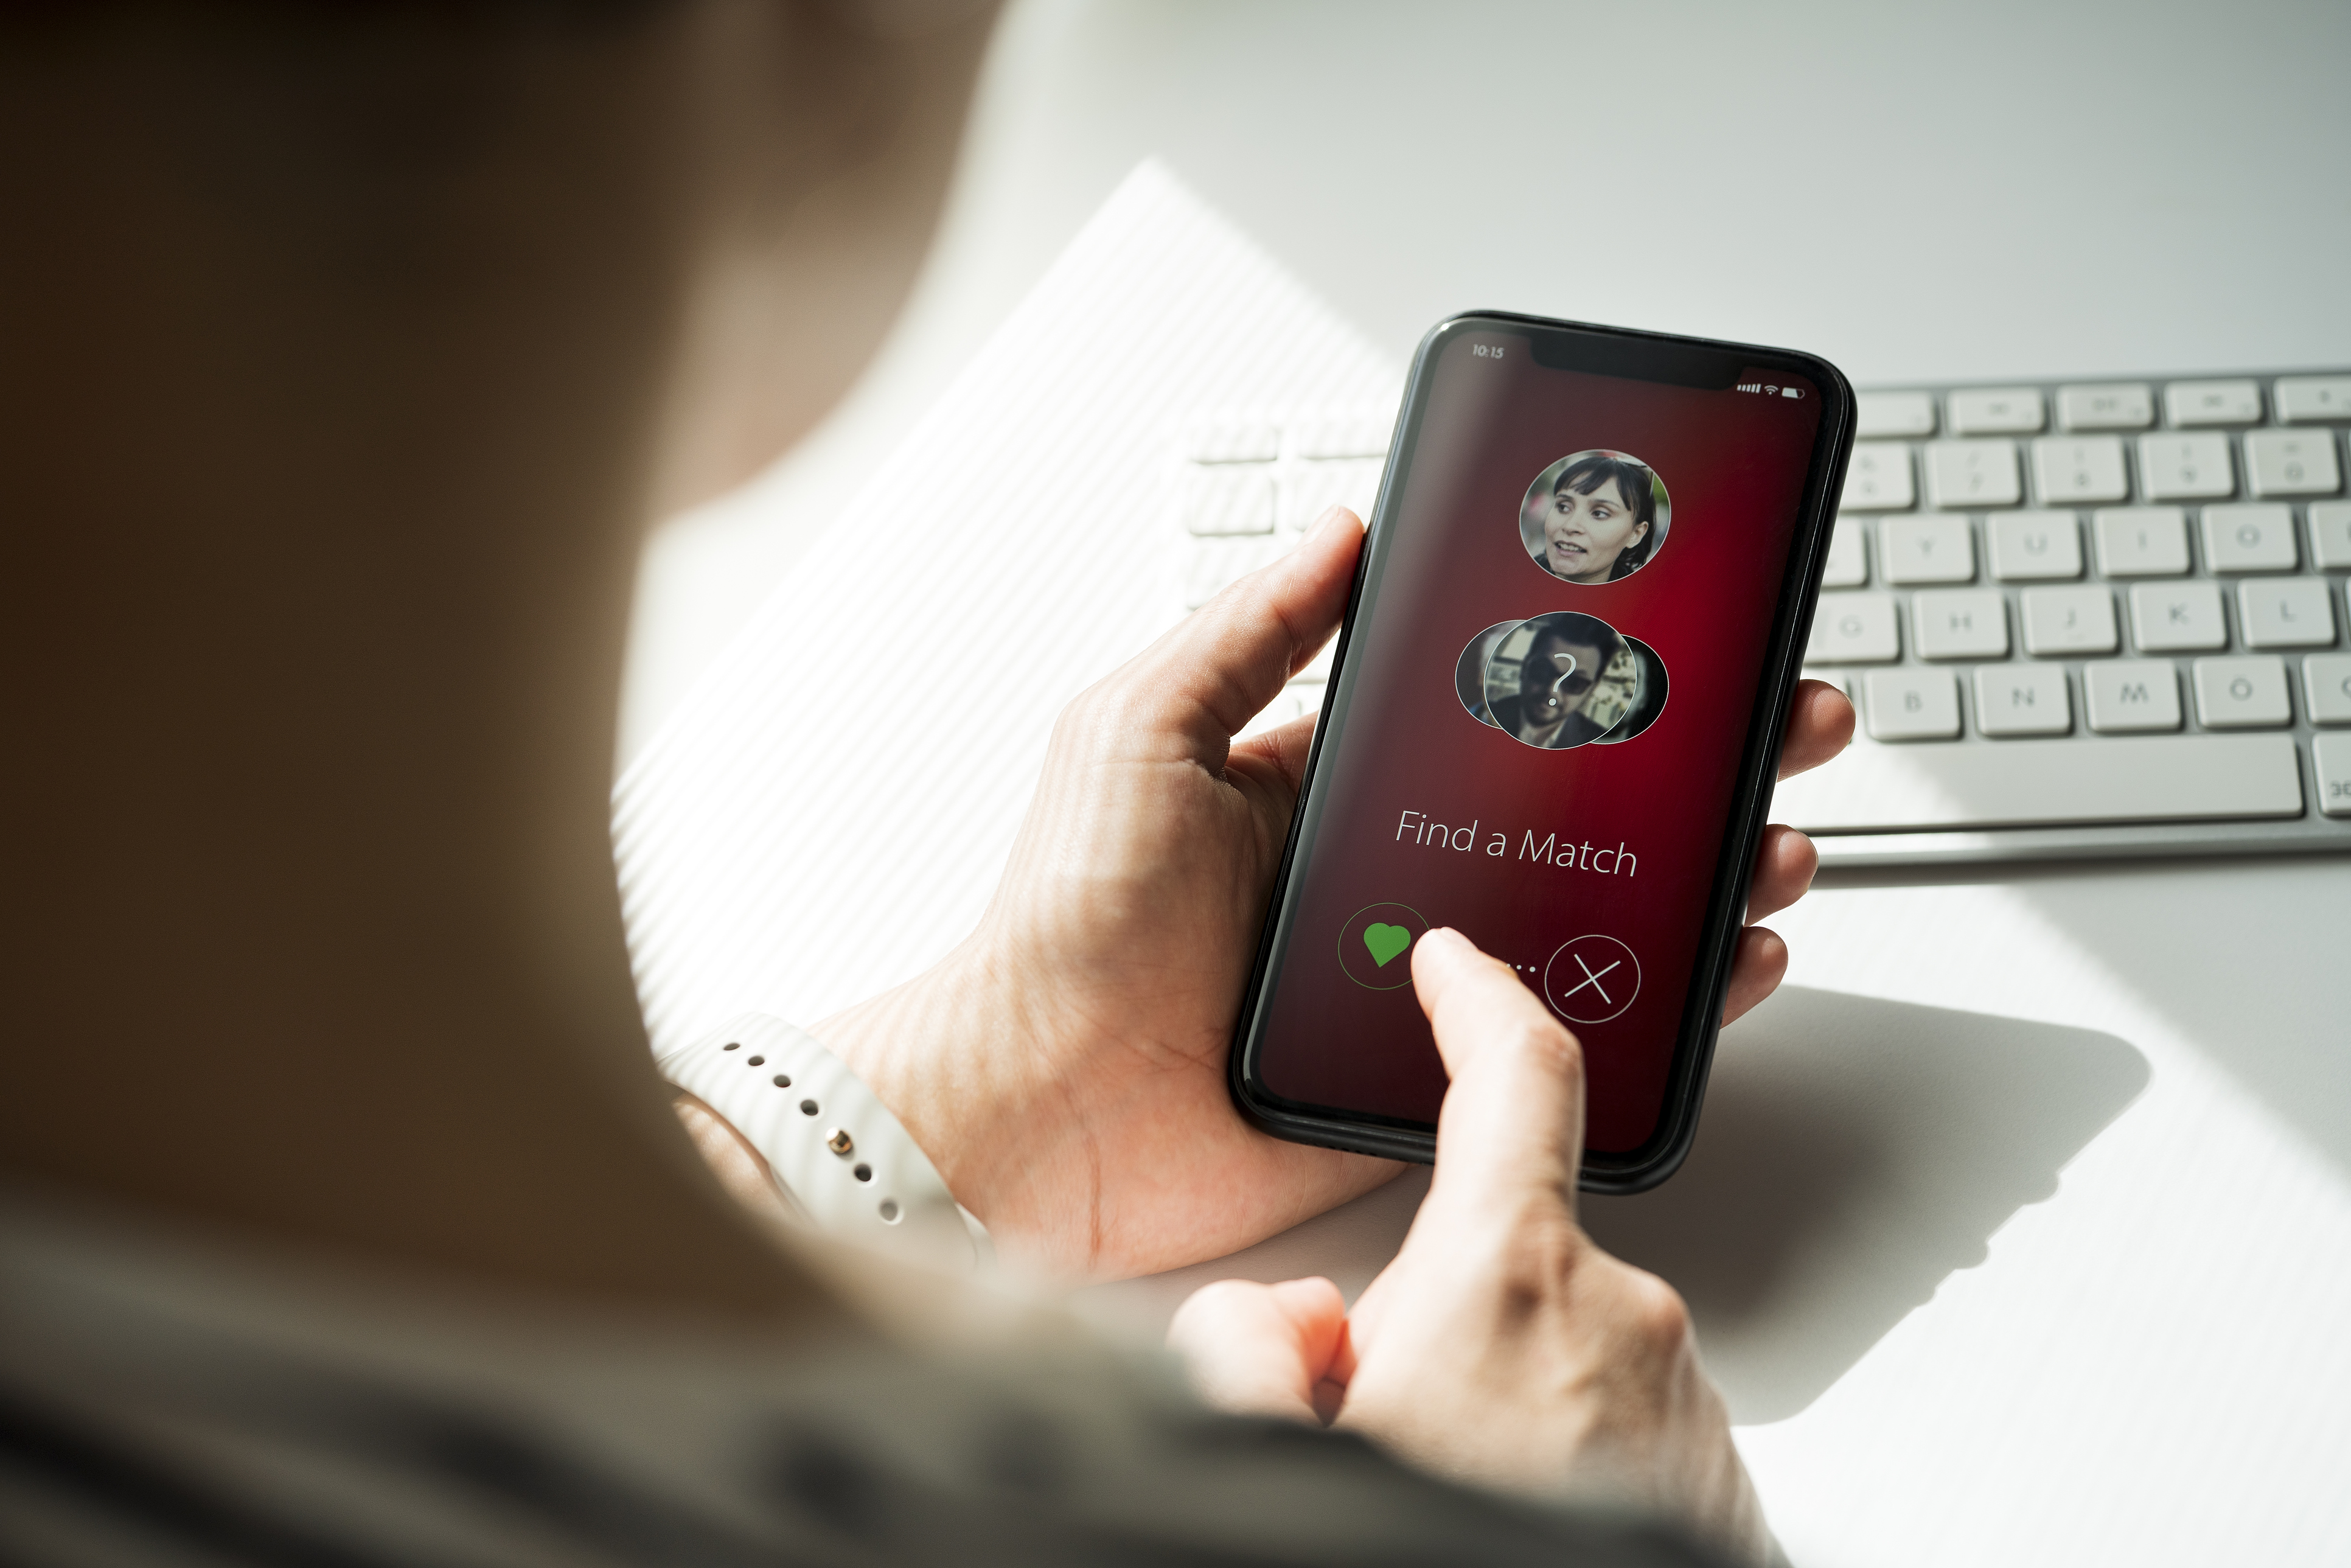 Do Girls Get Online Dating Matches Easier Than Guys?